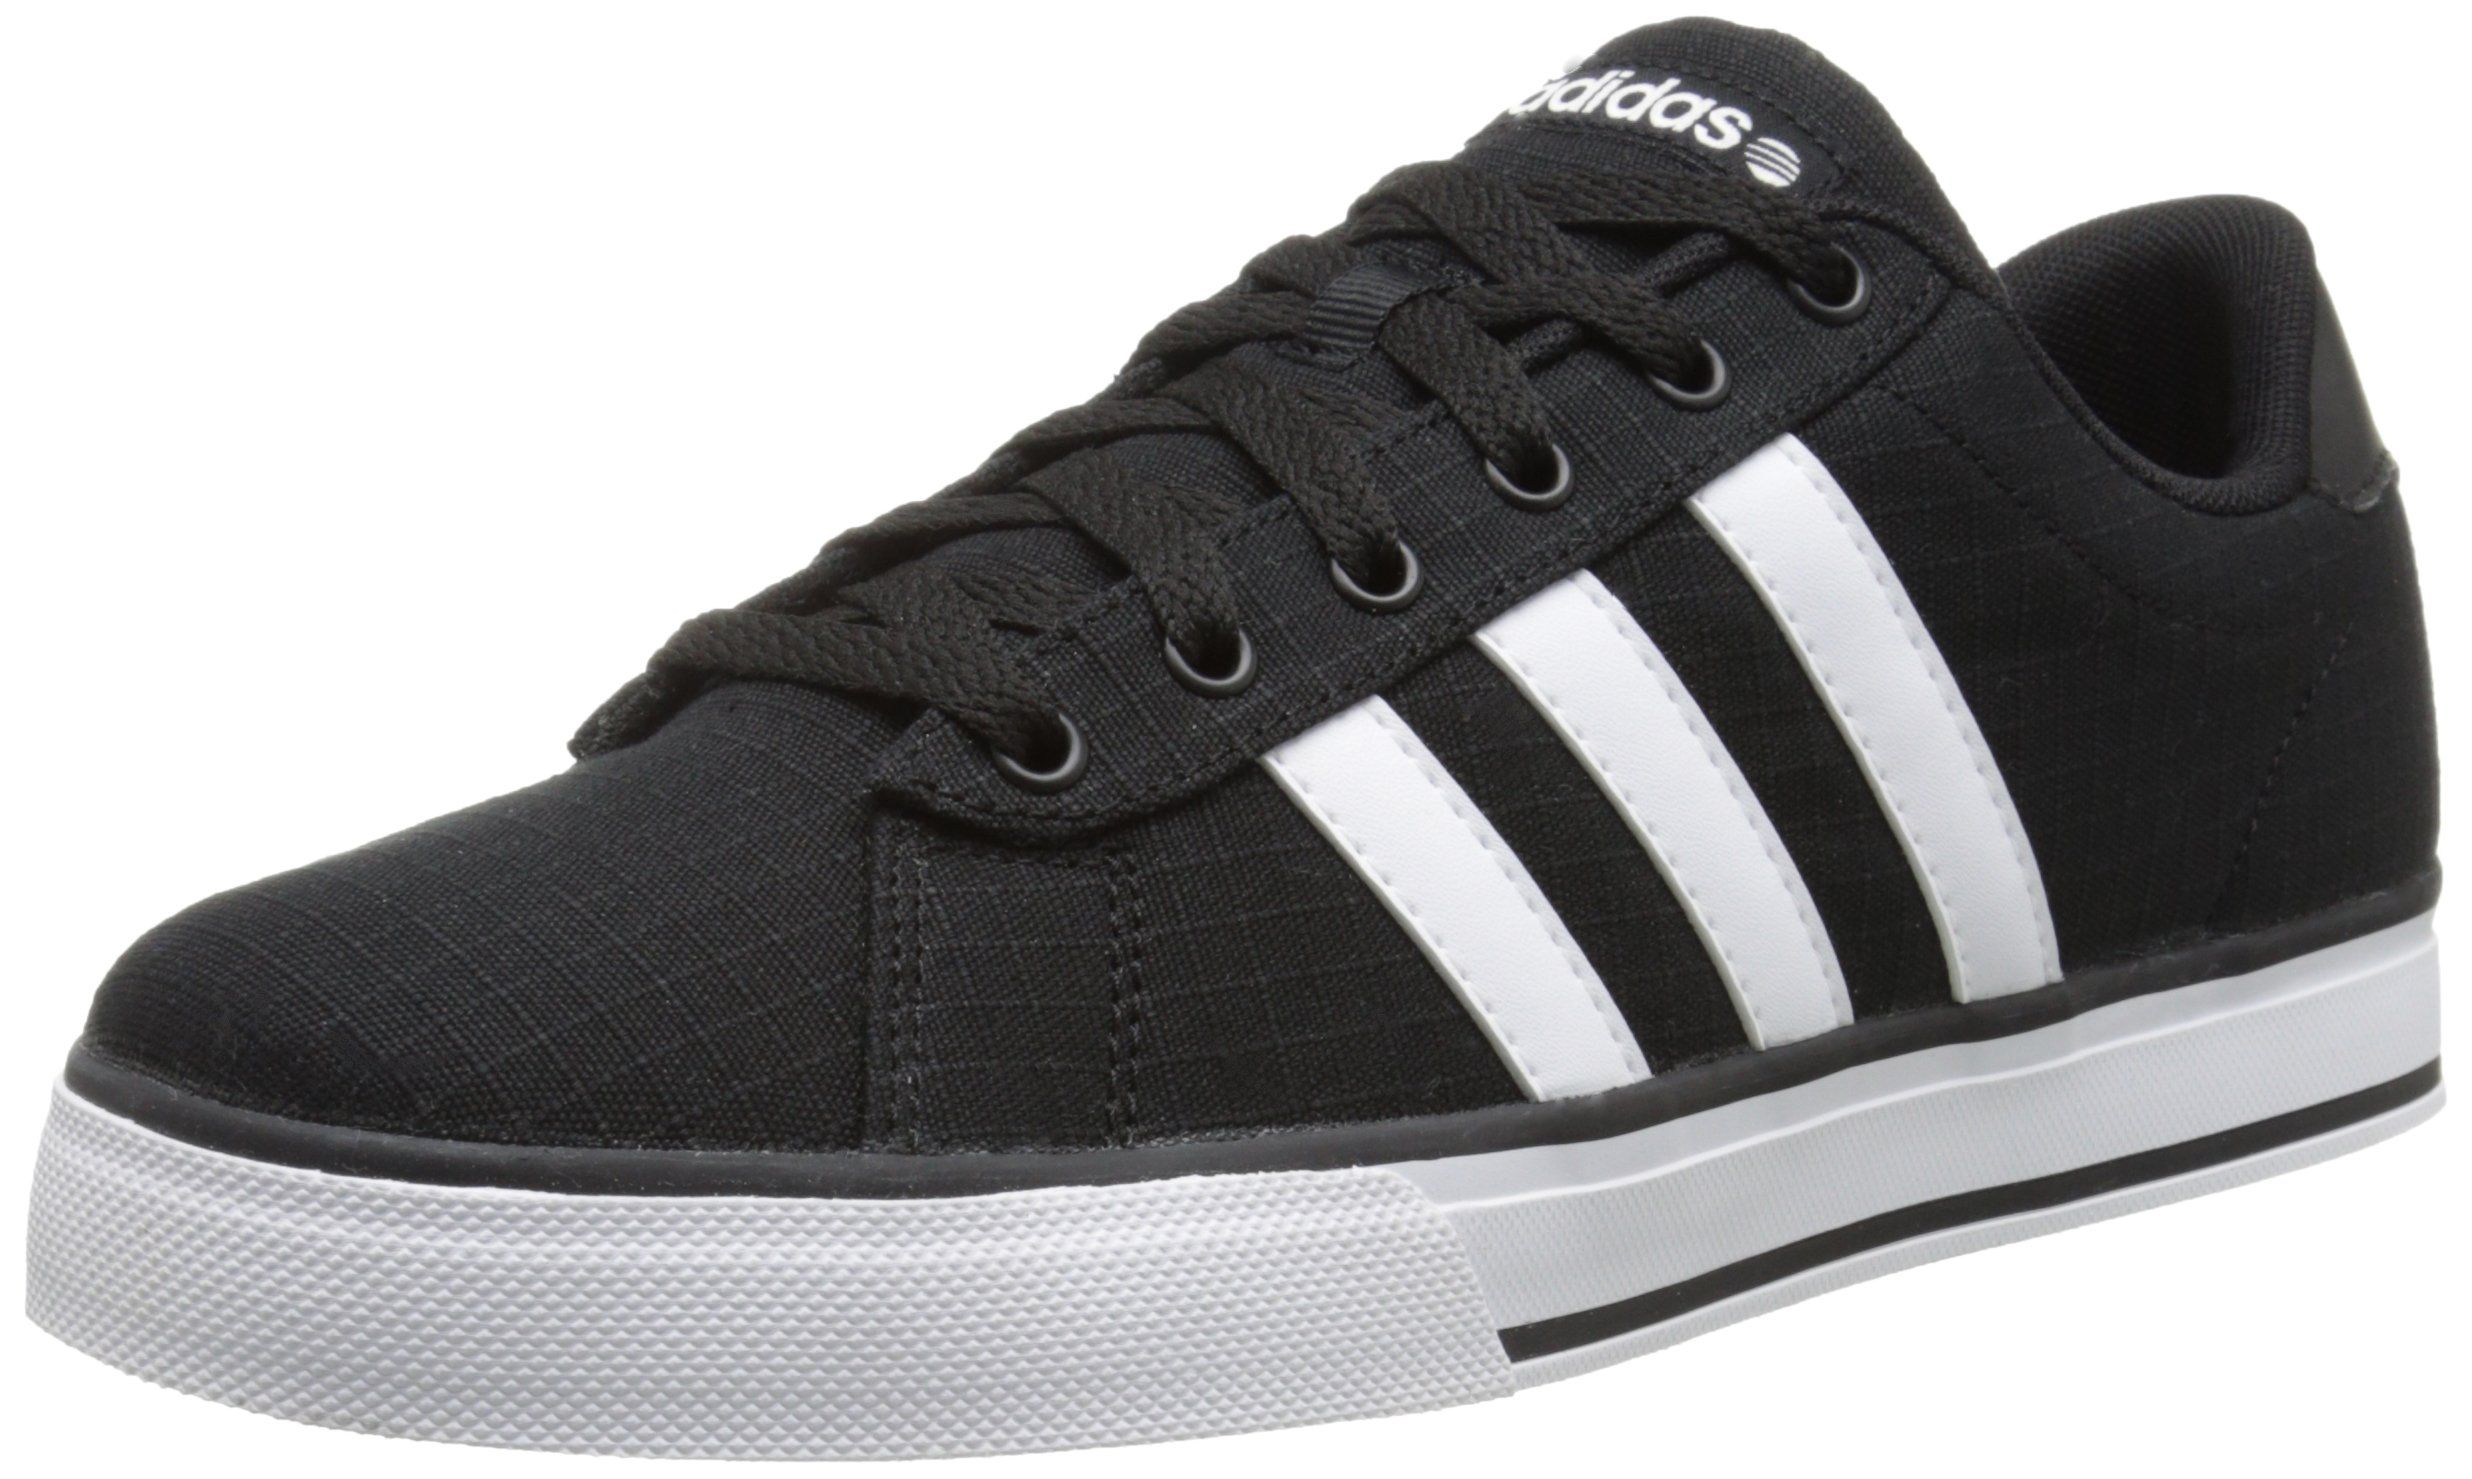 buy online d0721 8462a Amazon.com adidas NEO Mens Daily Lifestyle Skateboarding Shoe Clothing